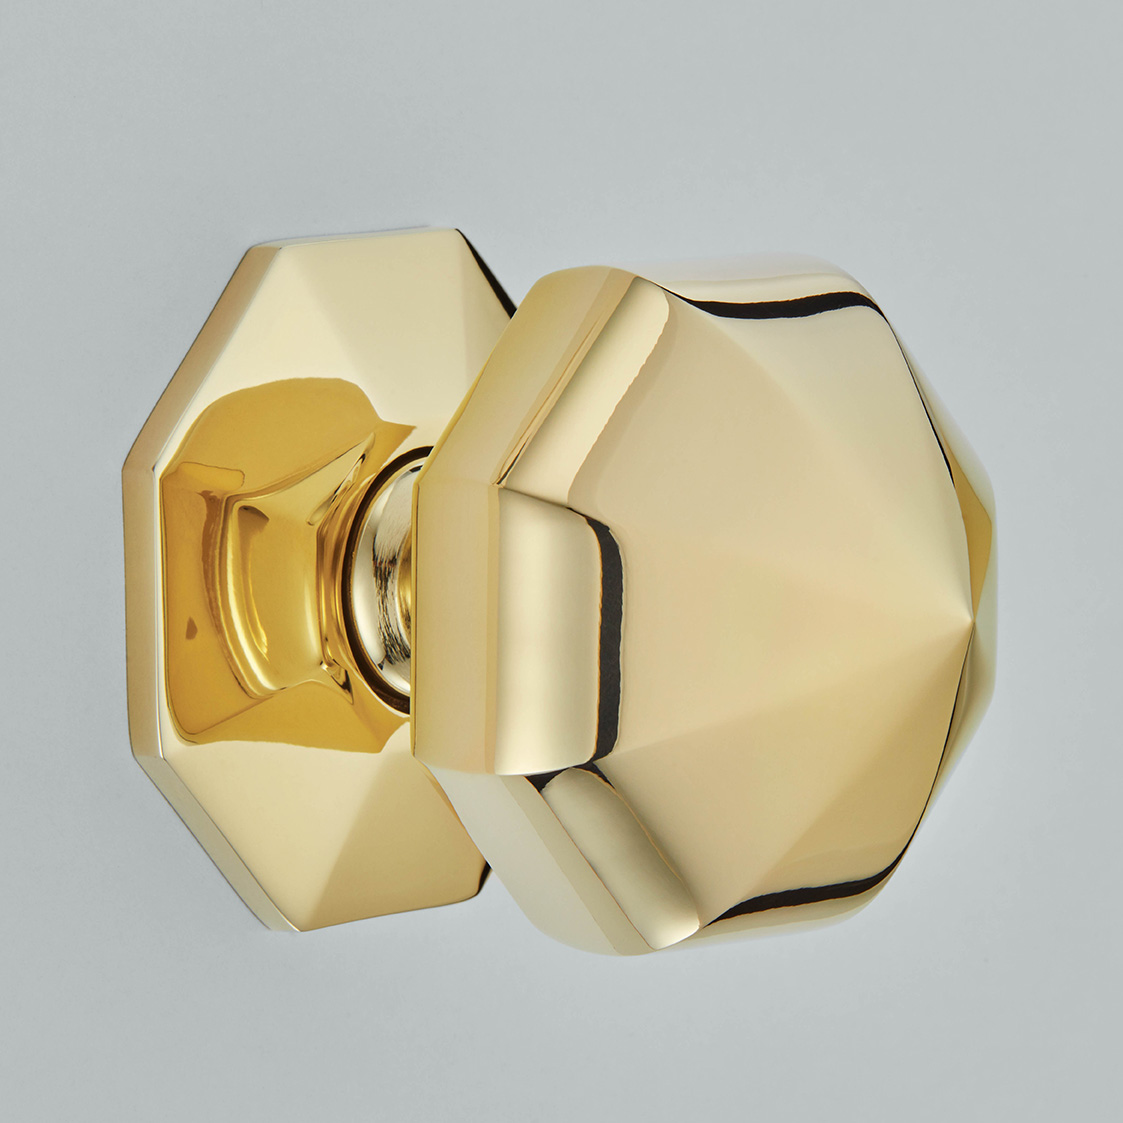 Octagonal Centre Door Knob